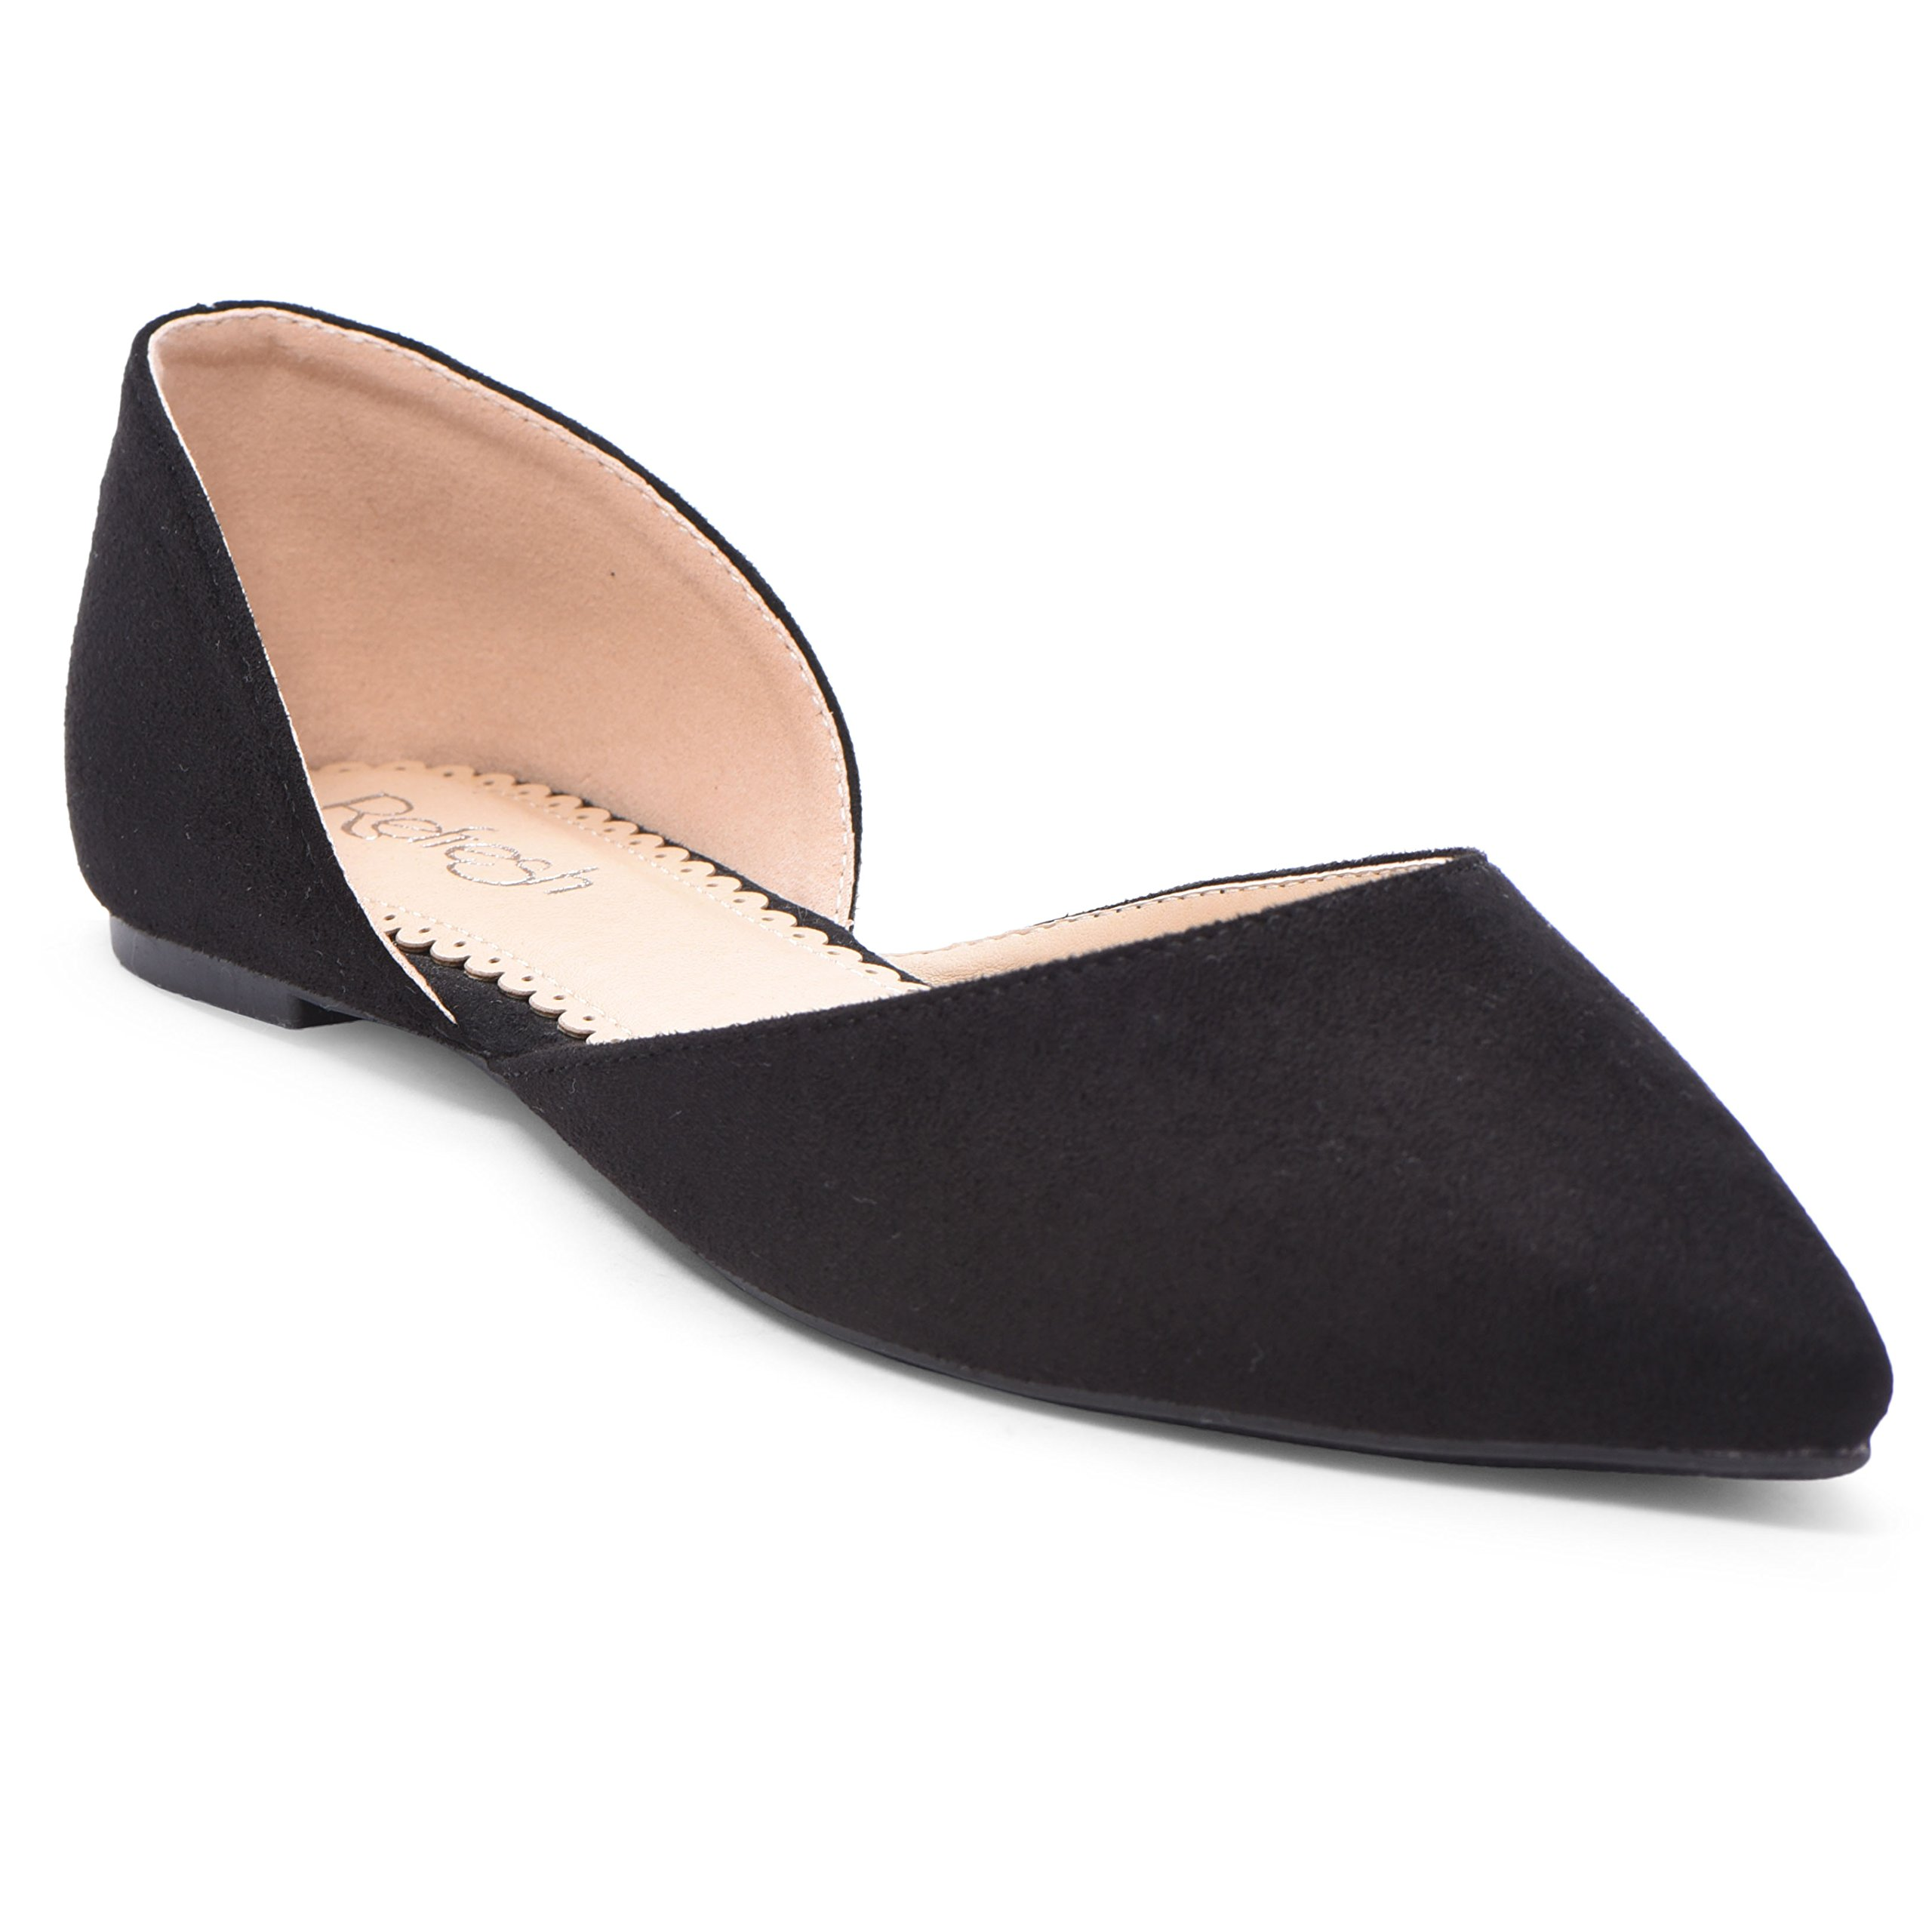 Women's Ballet Flat D'Orsay Comfort Light Pointed Toe Slip On Casual Shoes Black Suede 8 by ShoBeautiful (Image #1)